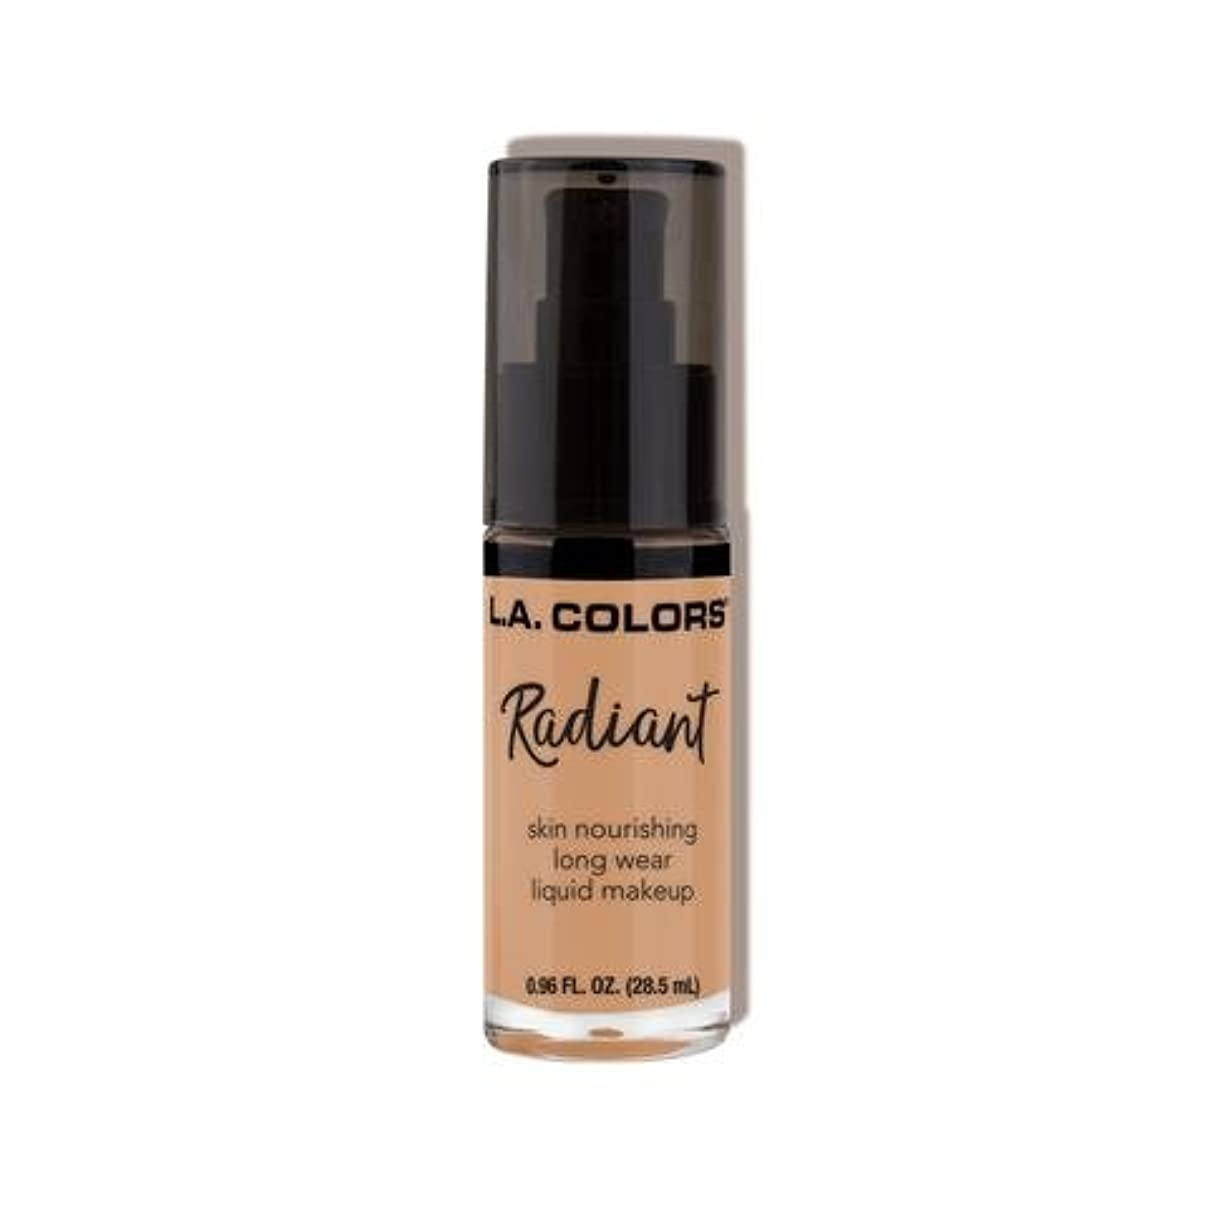 二次順応性知覚する(3 Pack) L.A. COLORS Radiant Liquid Makeup - Light Tan (並行輸入品)